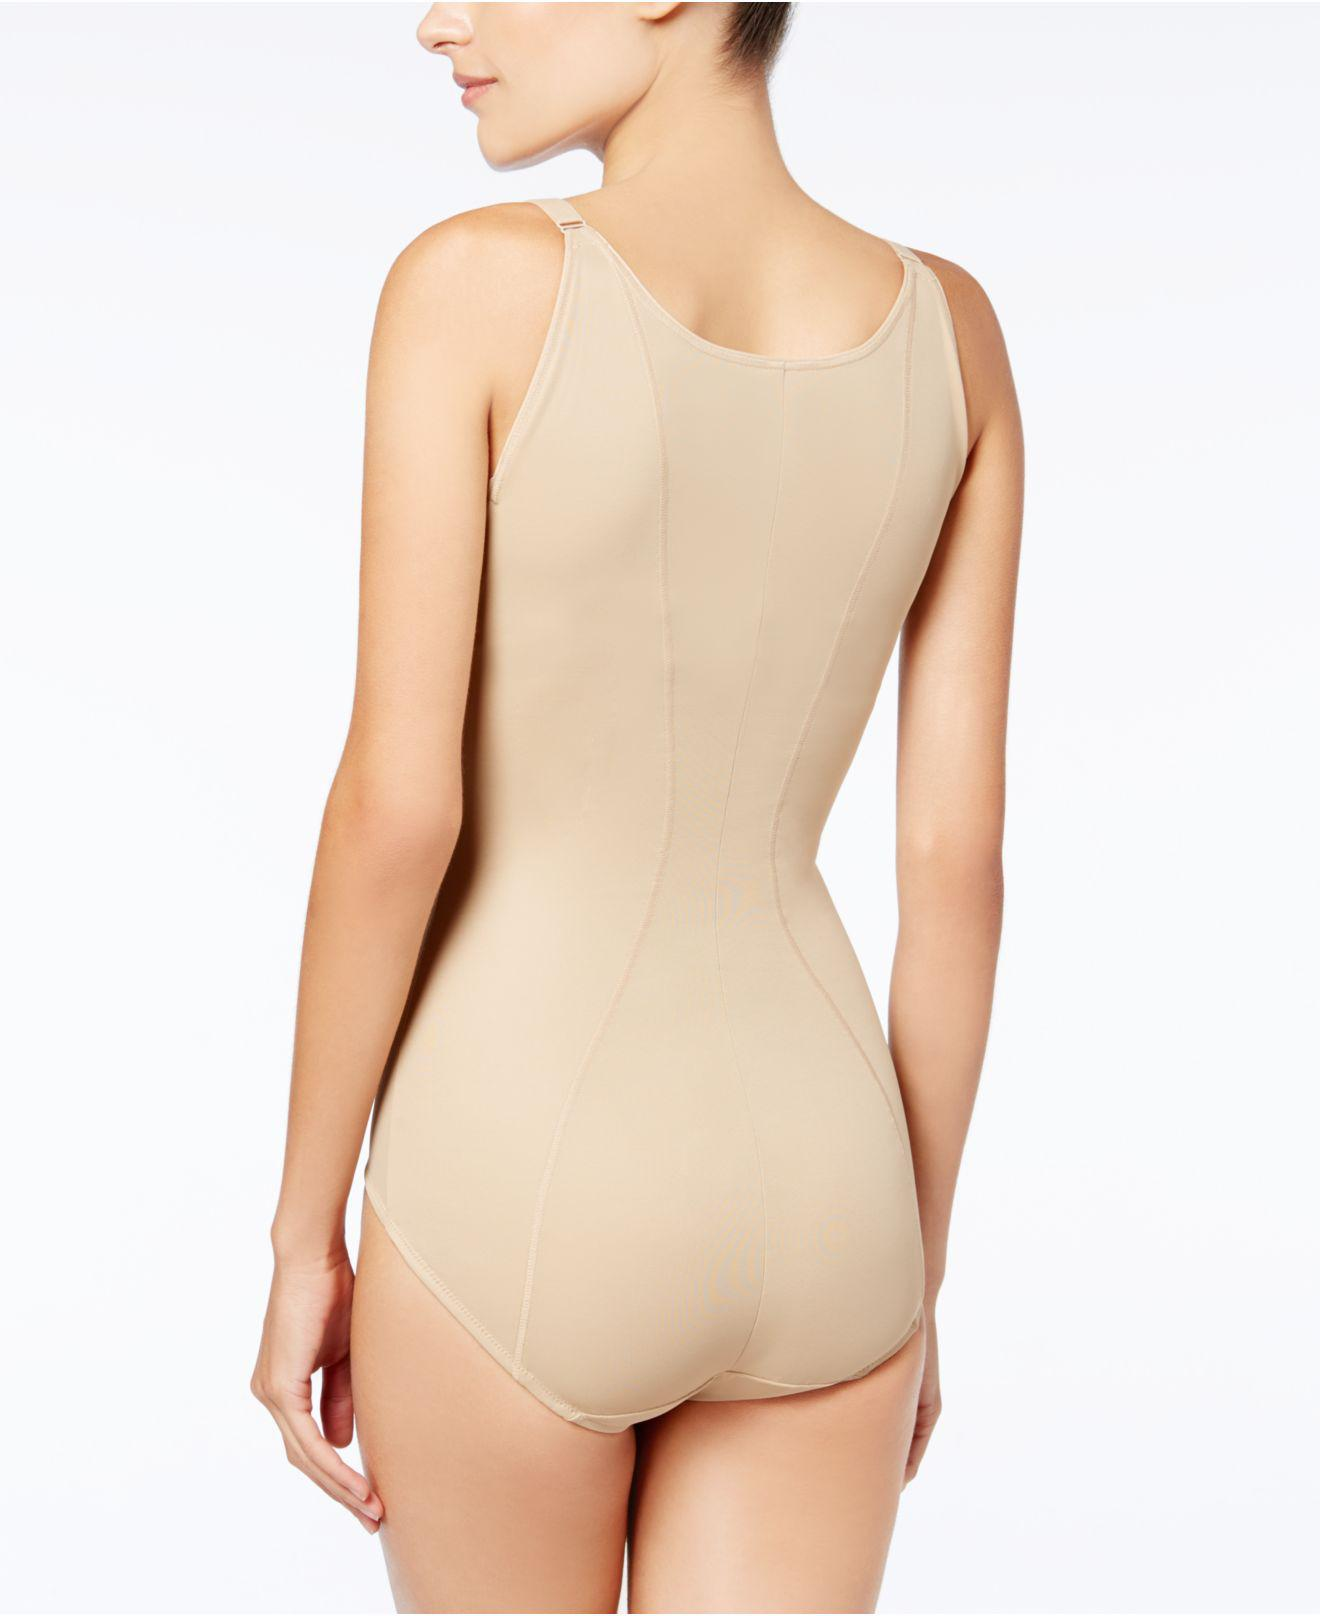 18de9482f9 Lyst - Maidenform Firm Control Ultimate Instant Slimmer Open Bust Body  Shaper 2656 in Natural